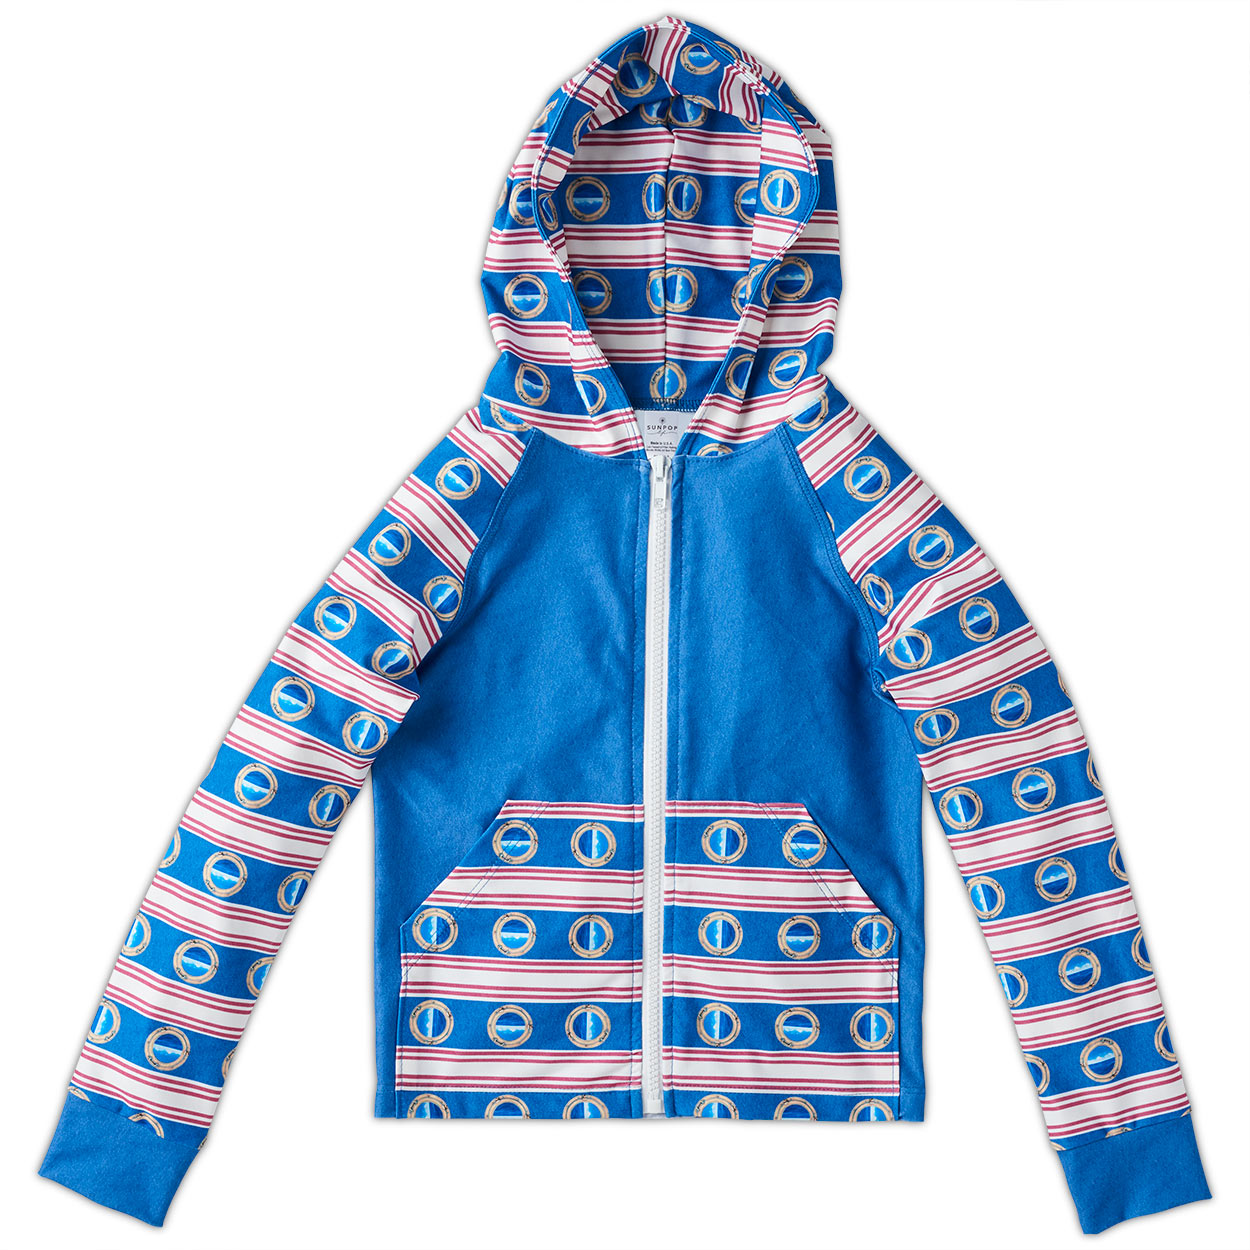 Modern Mariner Hybrid Zip Up Hoodie Upf50 Kids Boys Girls 2 12 Red White Blue Stripes Denim Portholes Unisex Sunpoplife